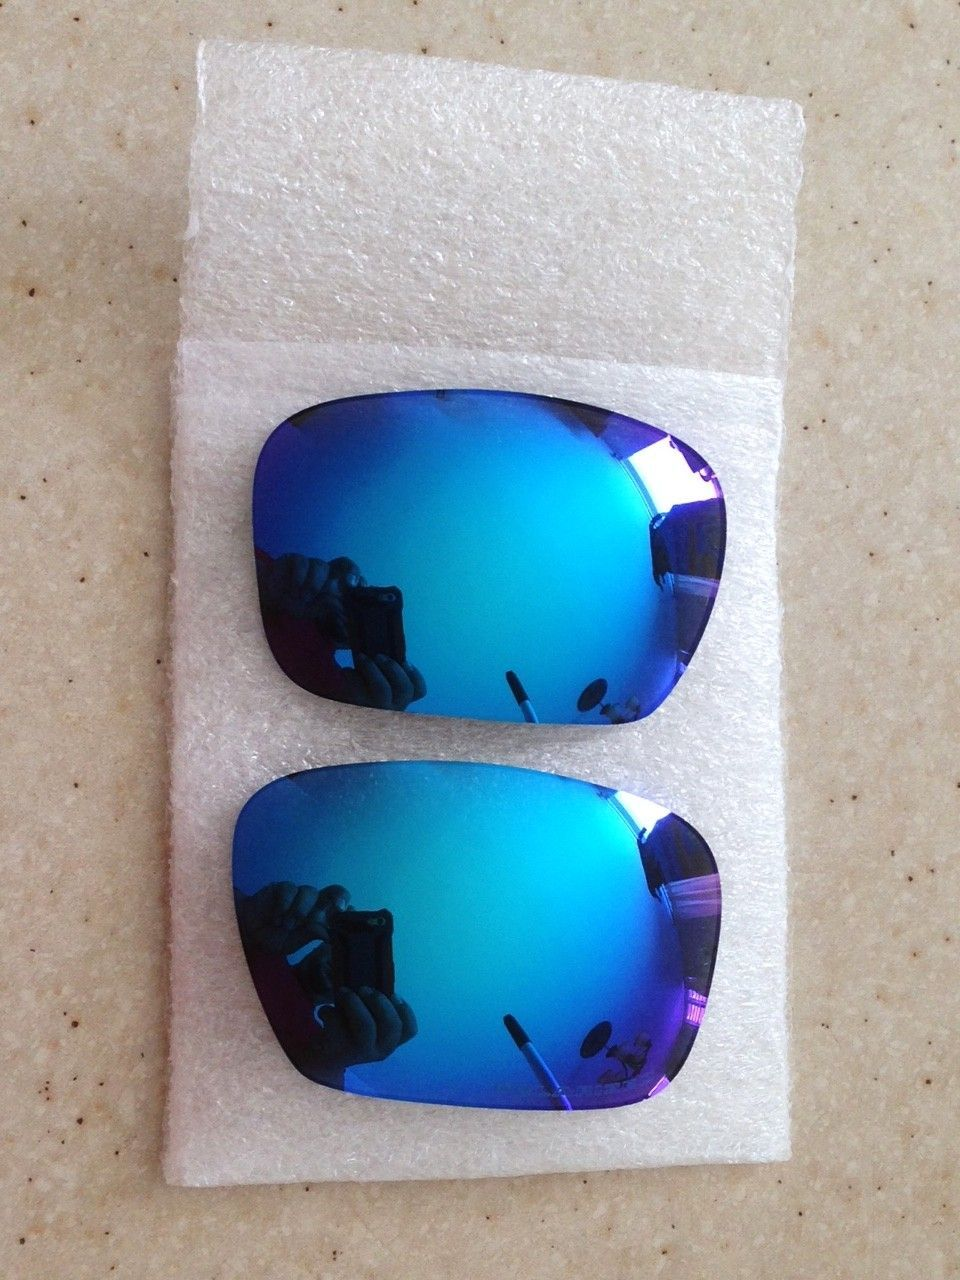 NEW GENUINE OAKLEY X-METAL BADMAN POLARIZED SAPPHIRE LENSES *PRICE DROPPED* - IMG_7135.JPG